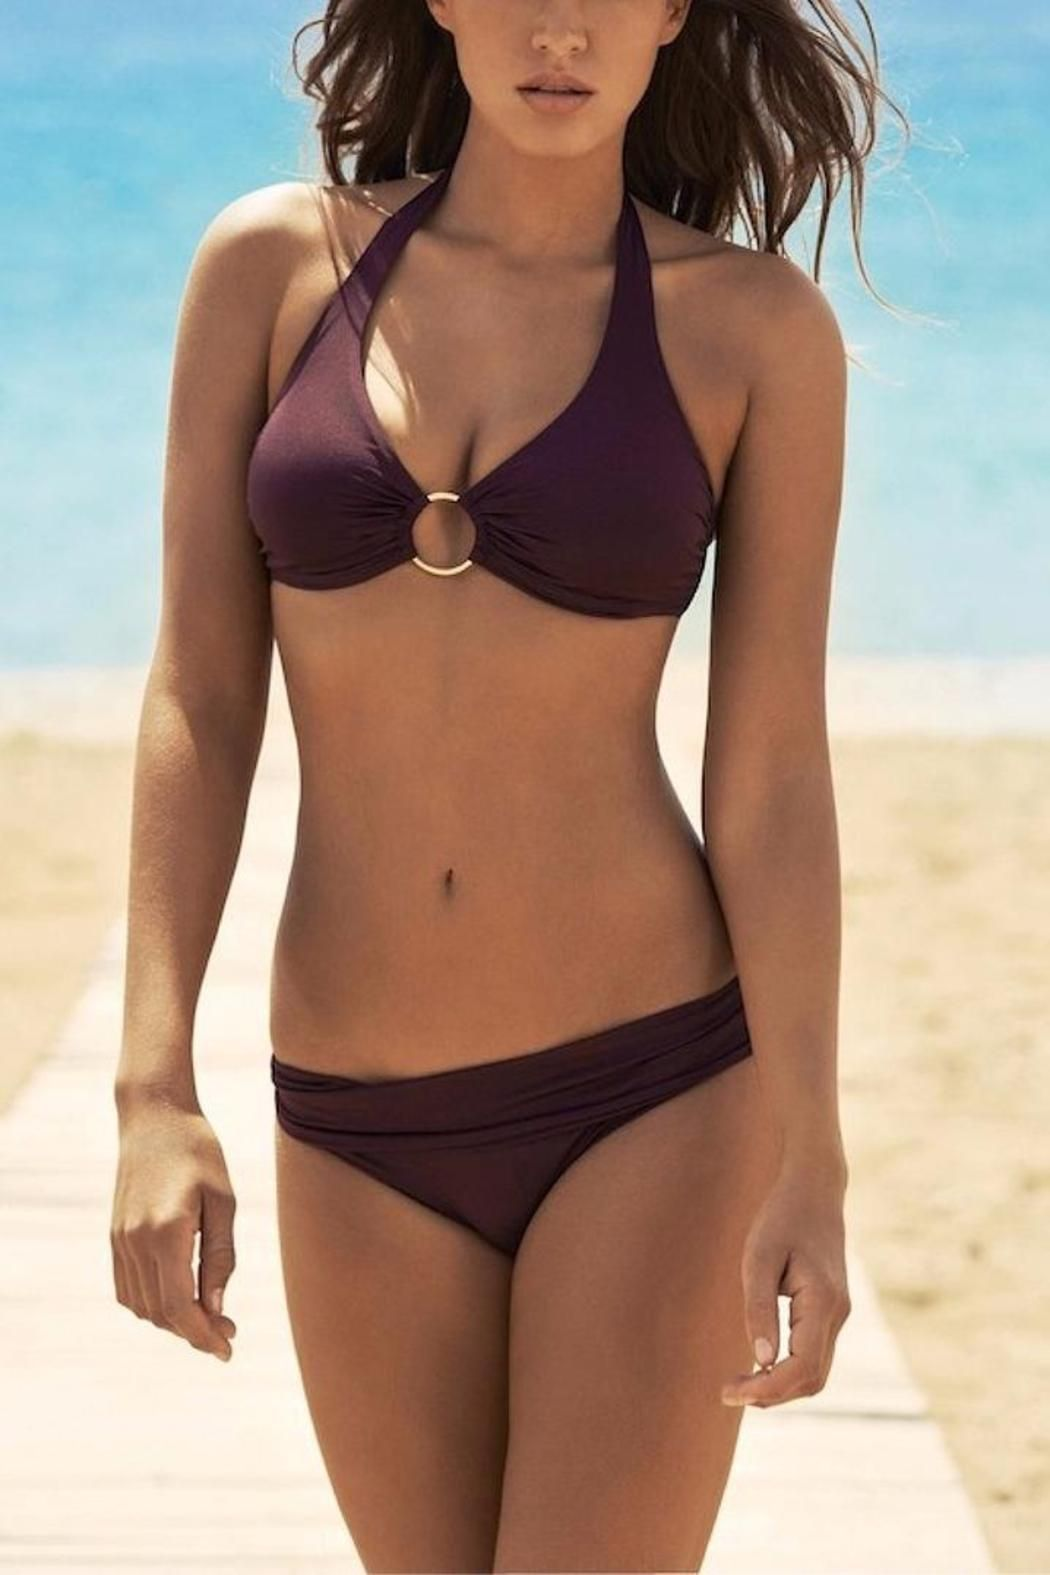 Classic halterneck bikini featuring hidden underwire and a metal ring at the bust that allows for ample support and full coverage. It's matching fold-over bottoms offers fuller coverage. Plum Color   Brussels Bikini by Melissa Odabash. Clothing - Swimwear - Tops - Underwire Miami, Florida